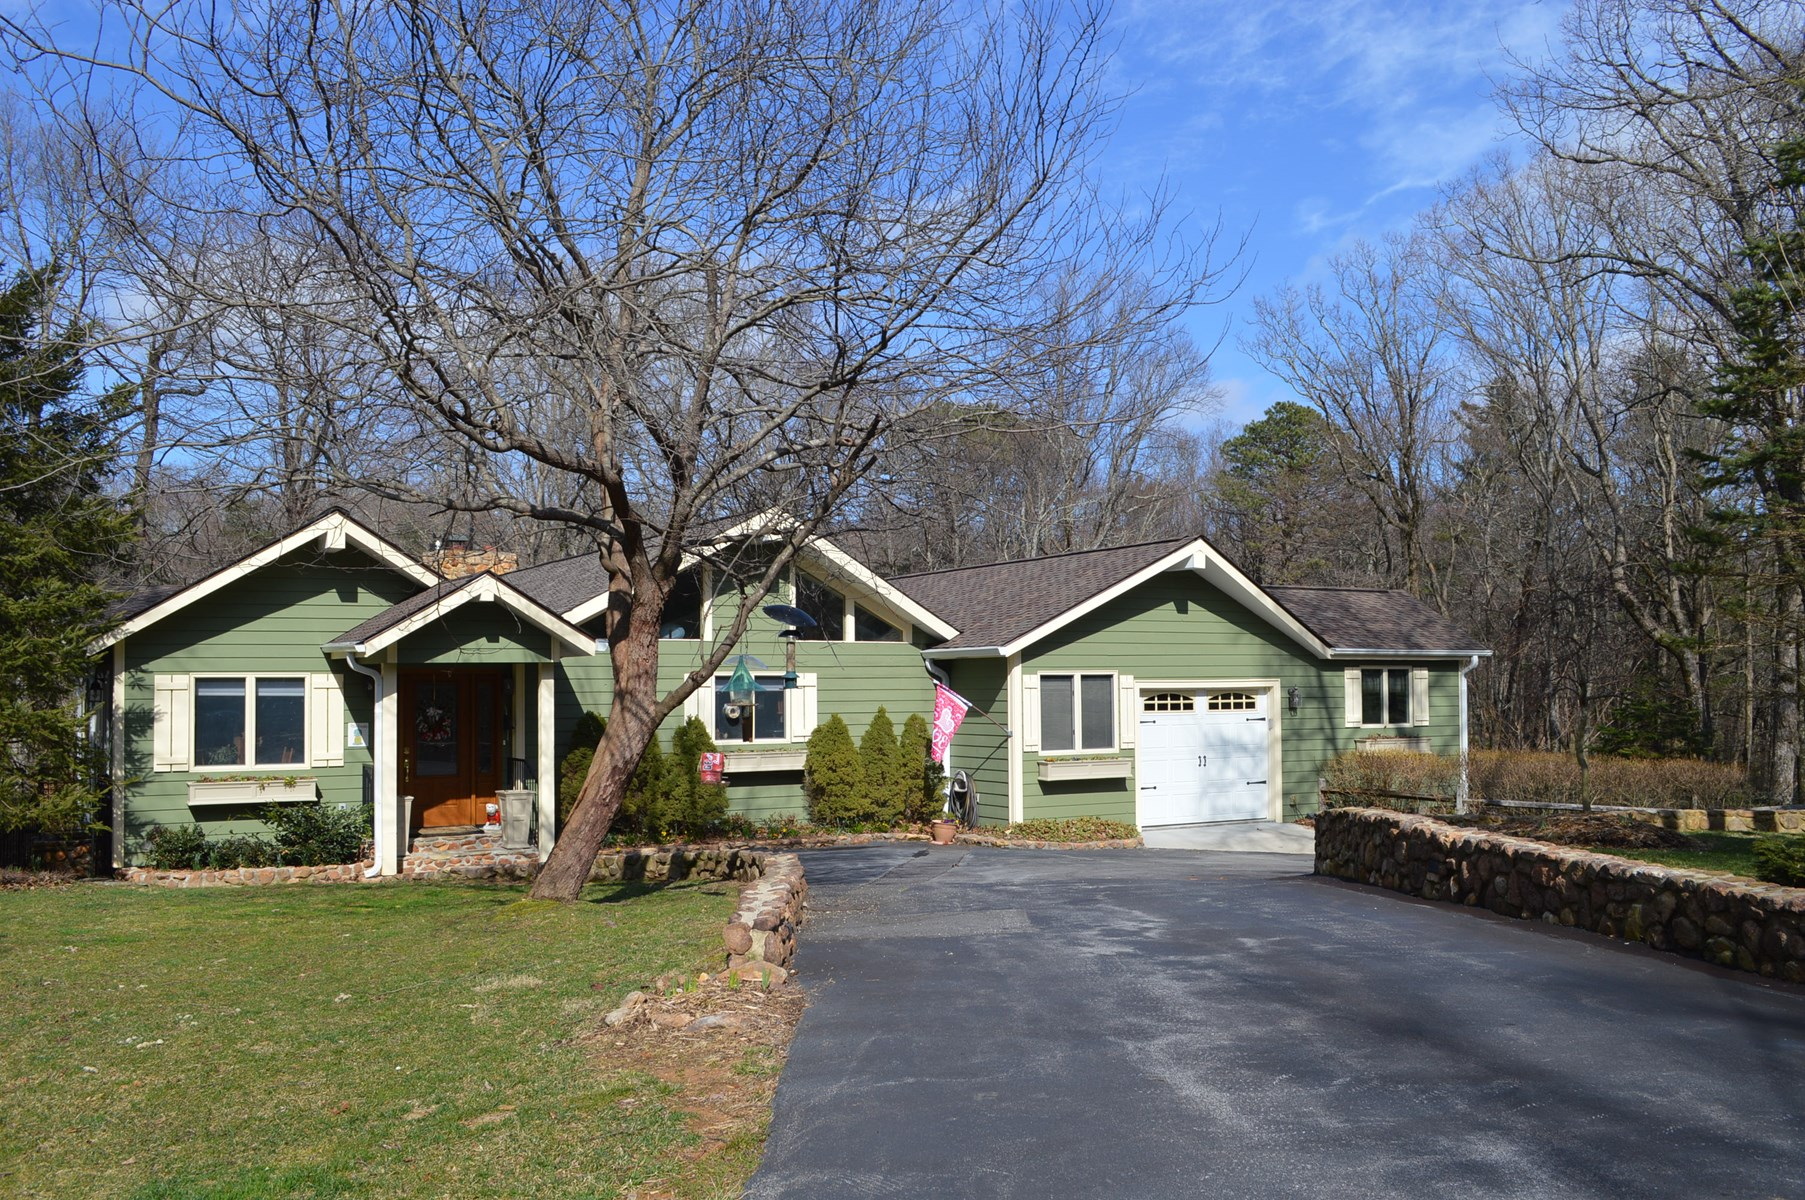 Beautiful Golf Course Home for Sale in Roaring Gap NC